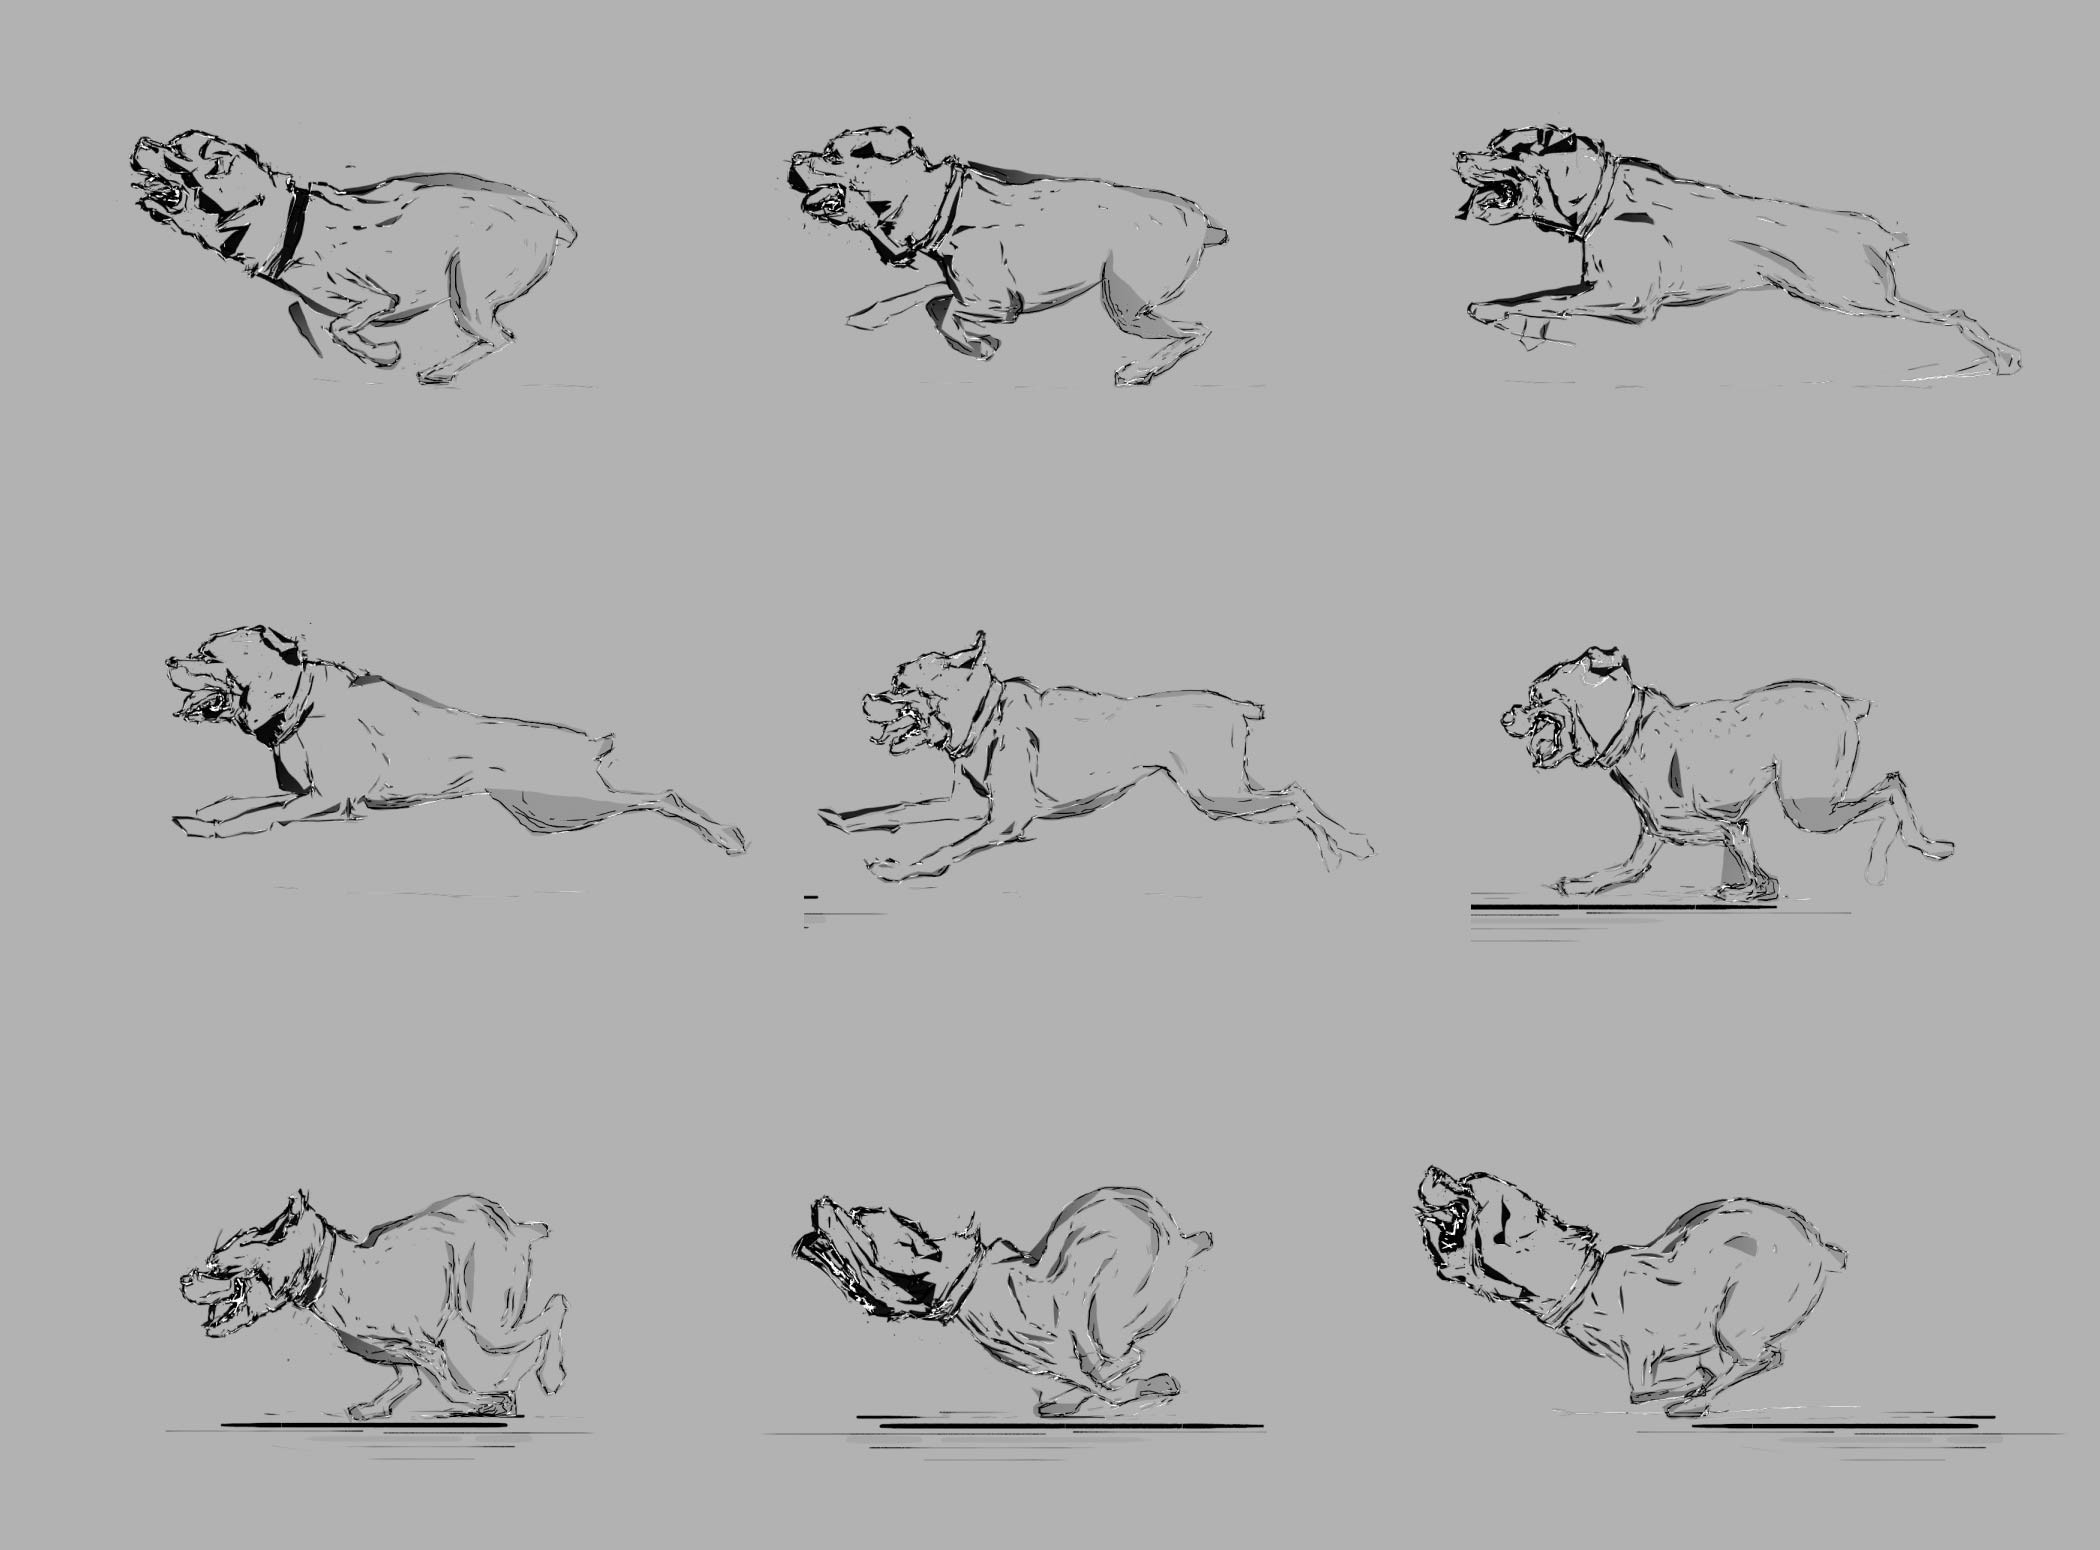 Animation of Rottweiler running cycle